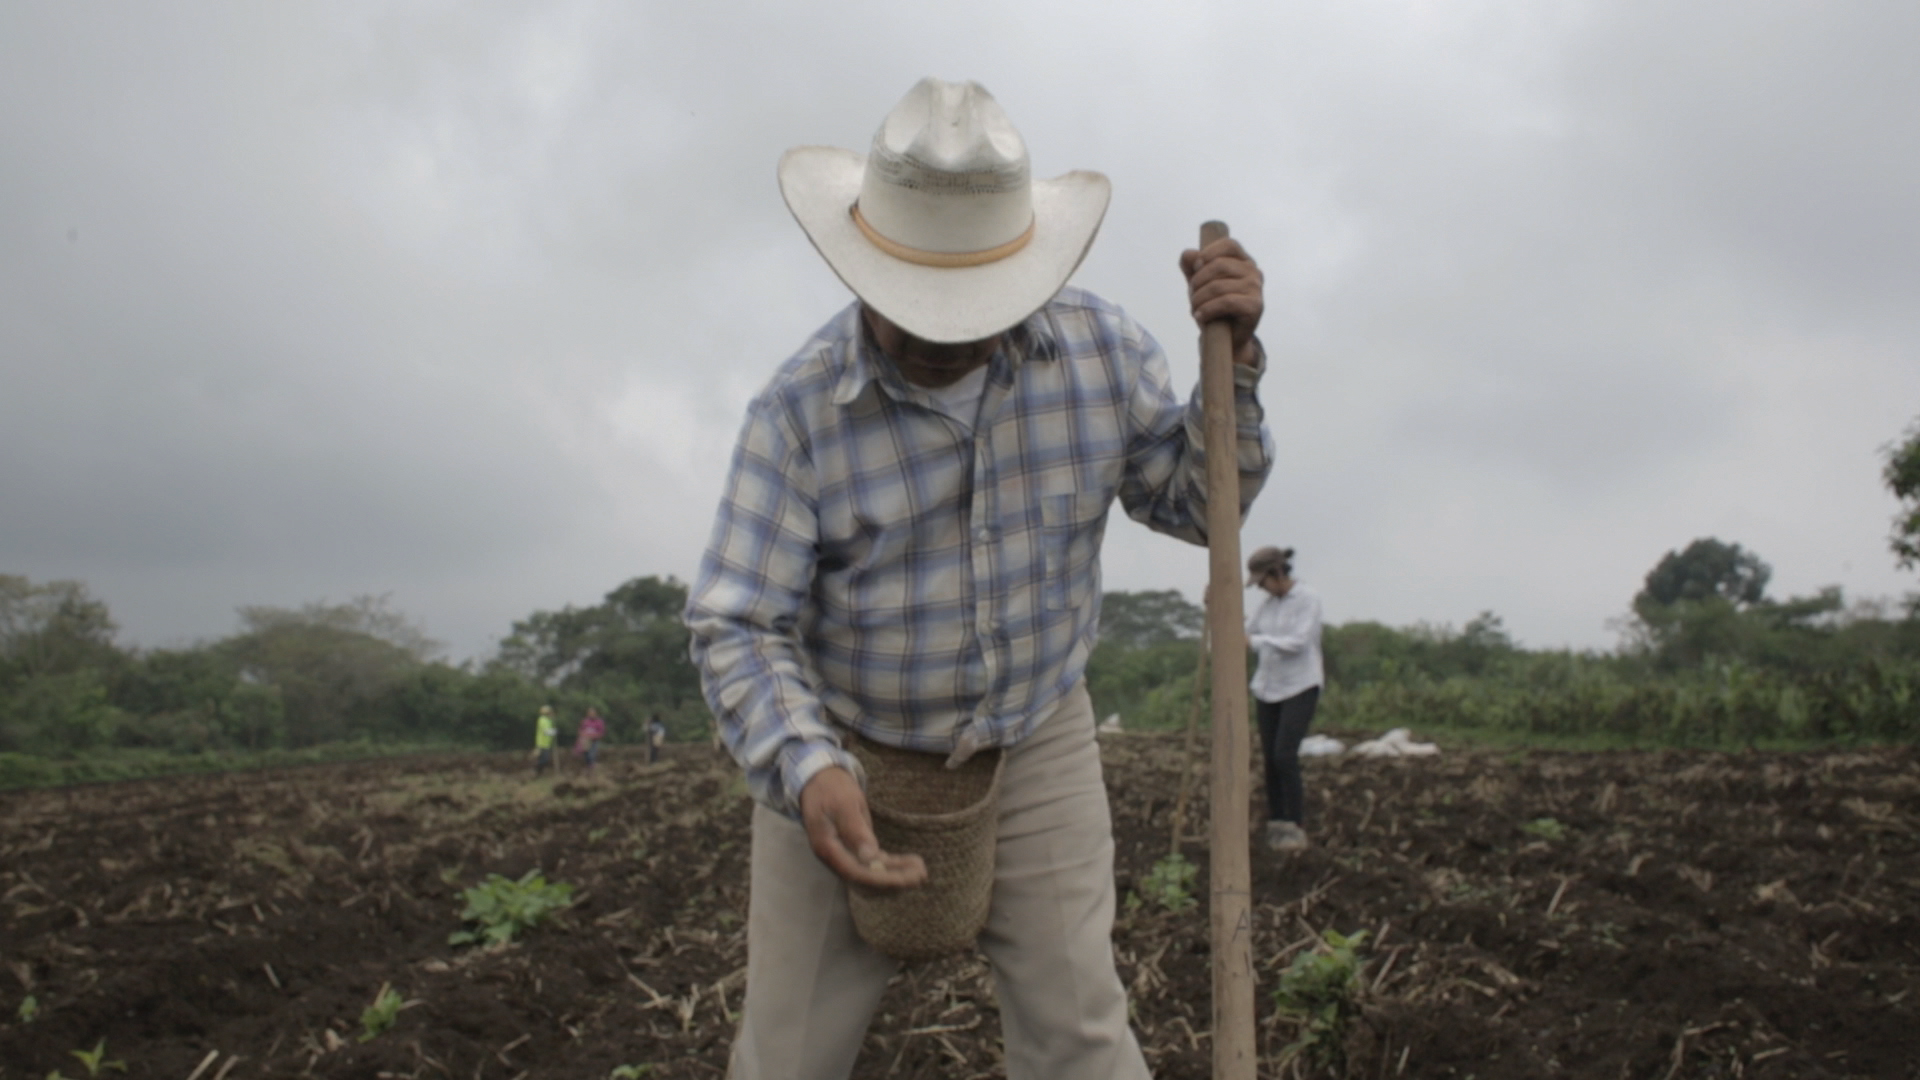 a man wearing a checkered shirt, beige trousers, and a white hat holding a large staff and sowing seeds by hand